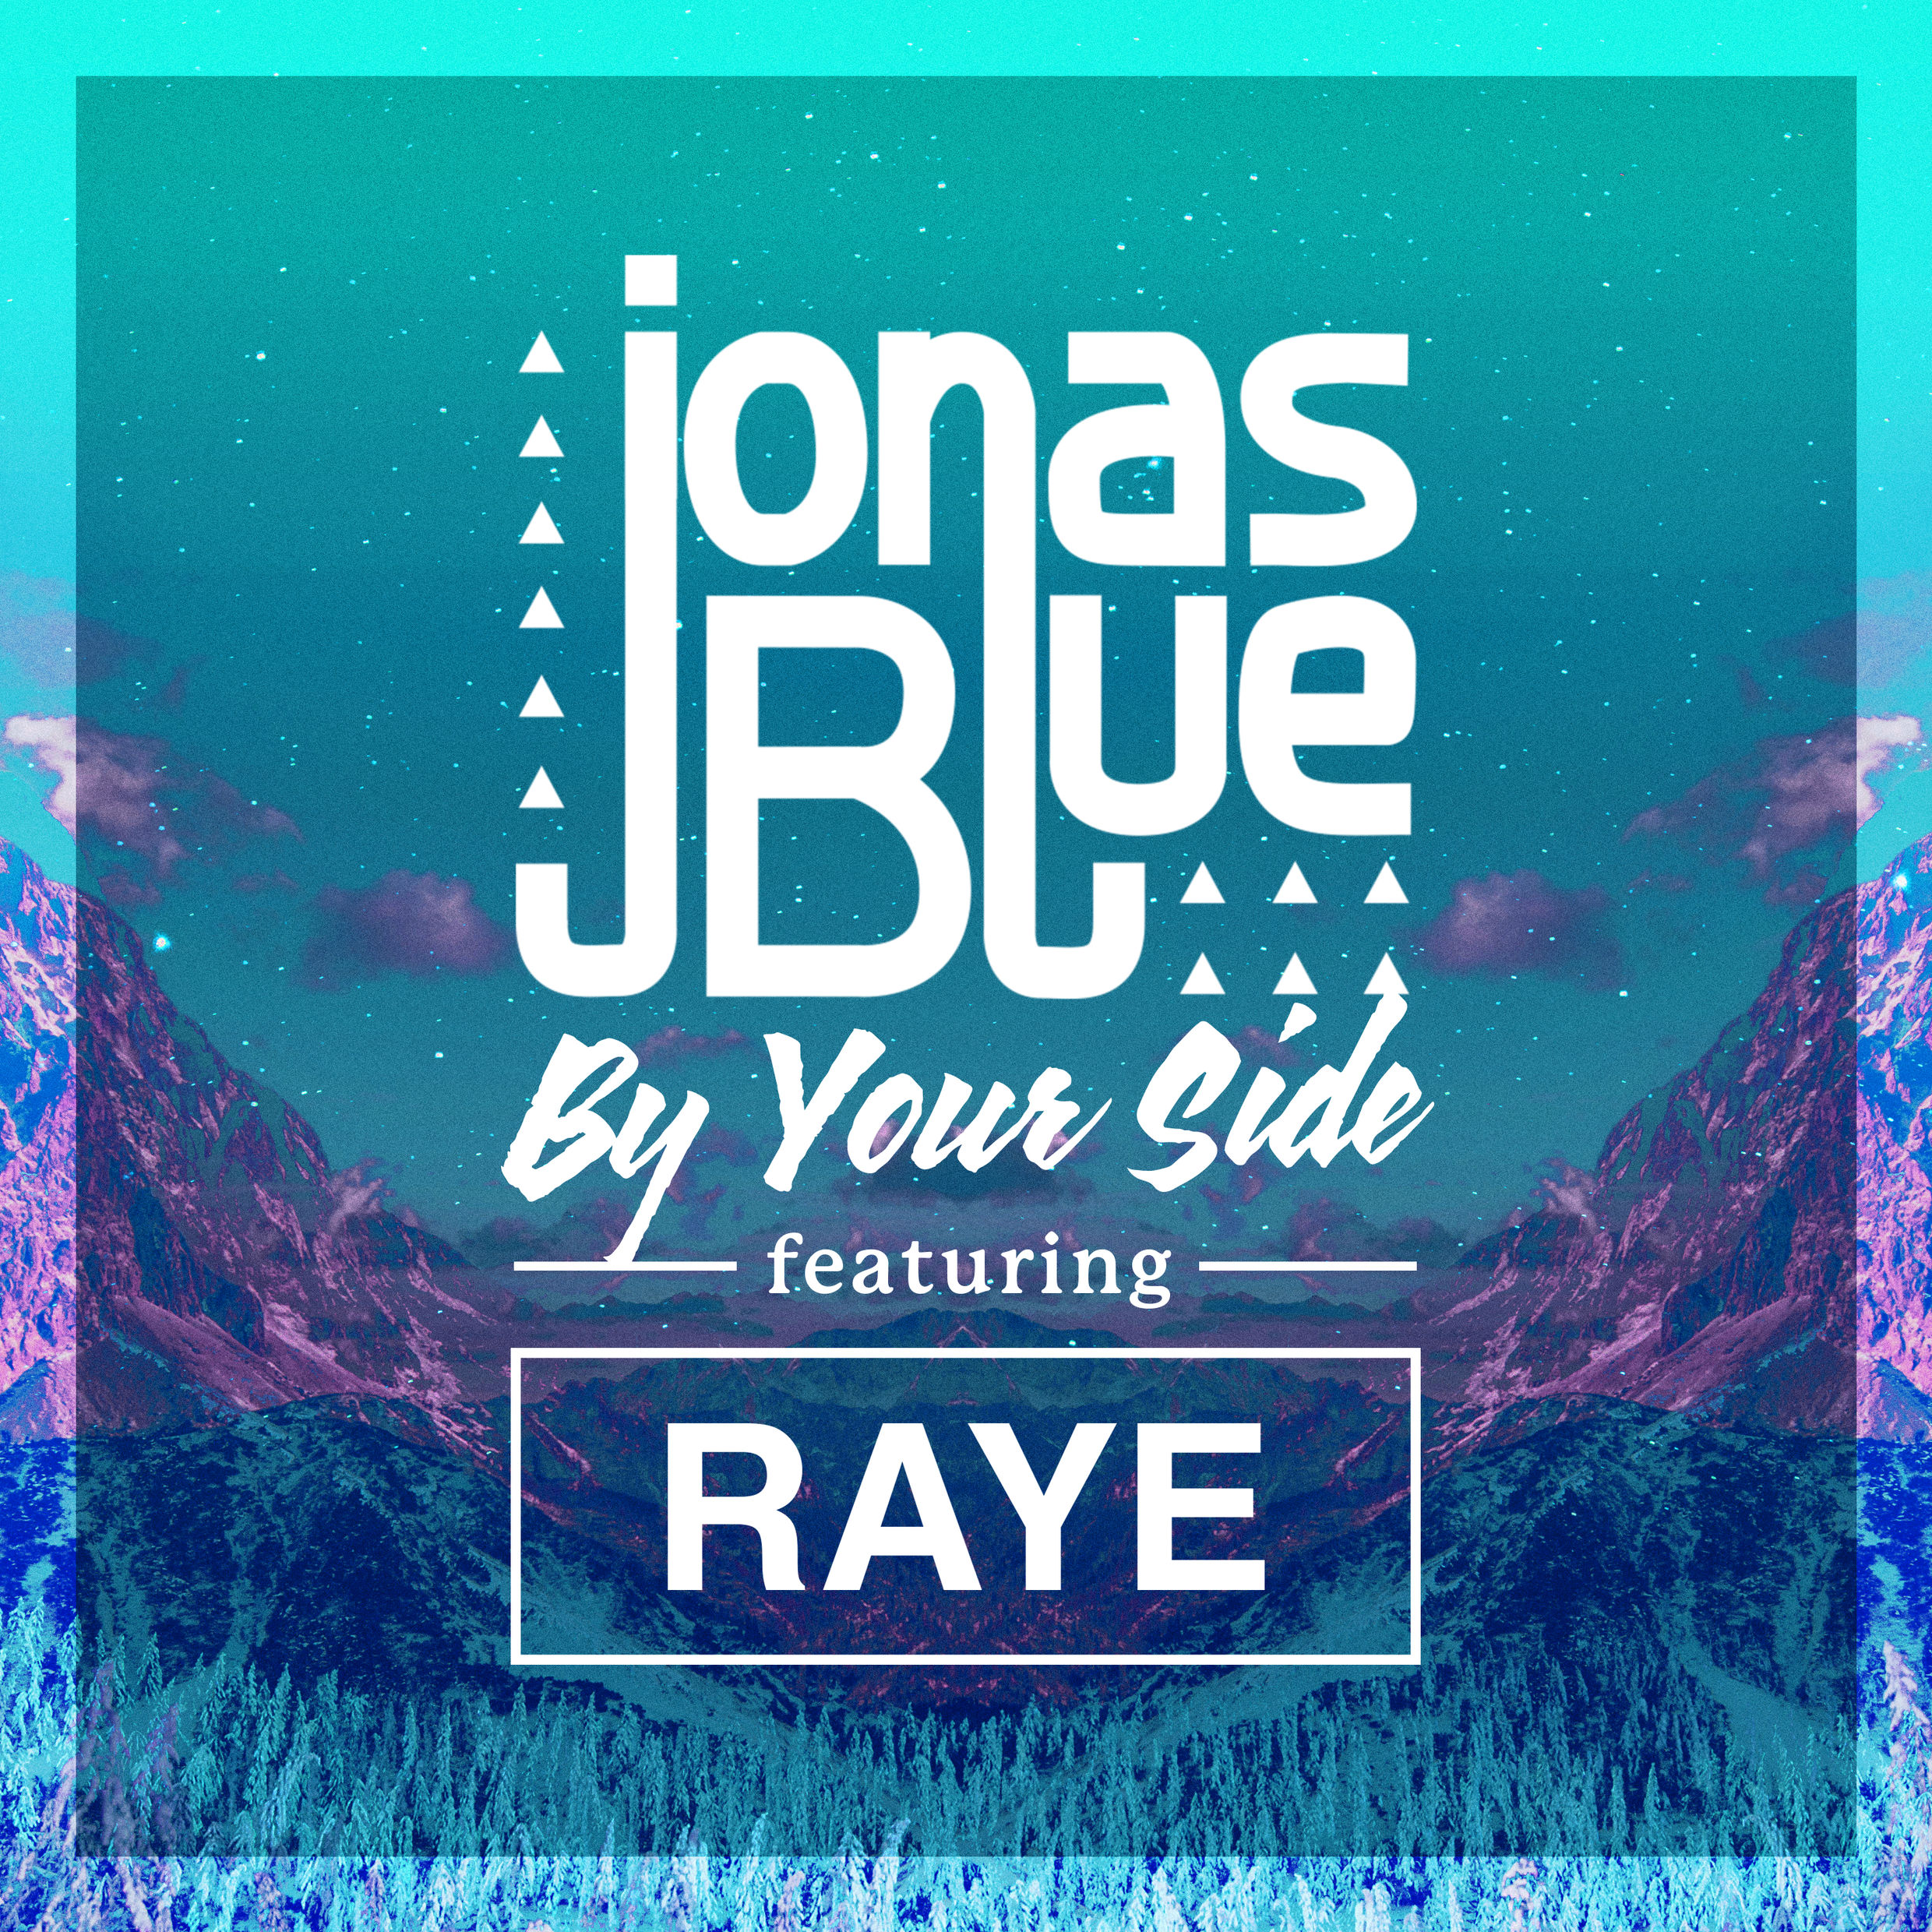 jonas blue by your side ft raye songtree. Black Bedroom Furniture Sets. Home Design Ideas